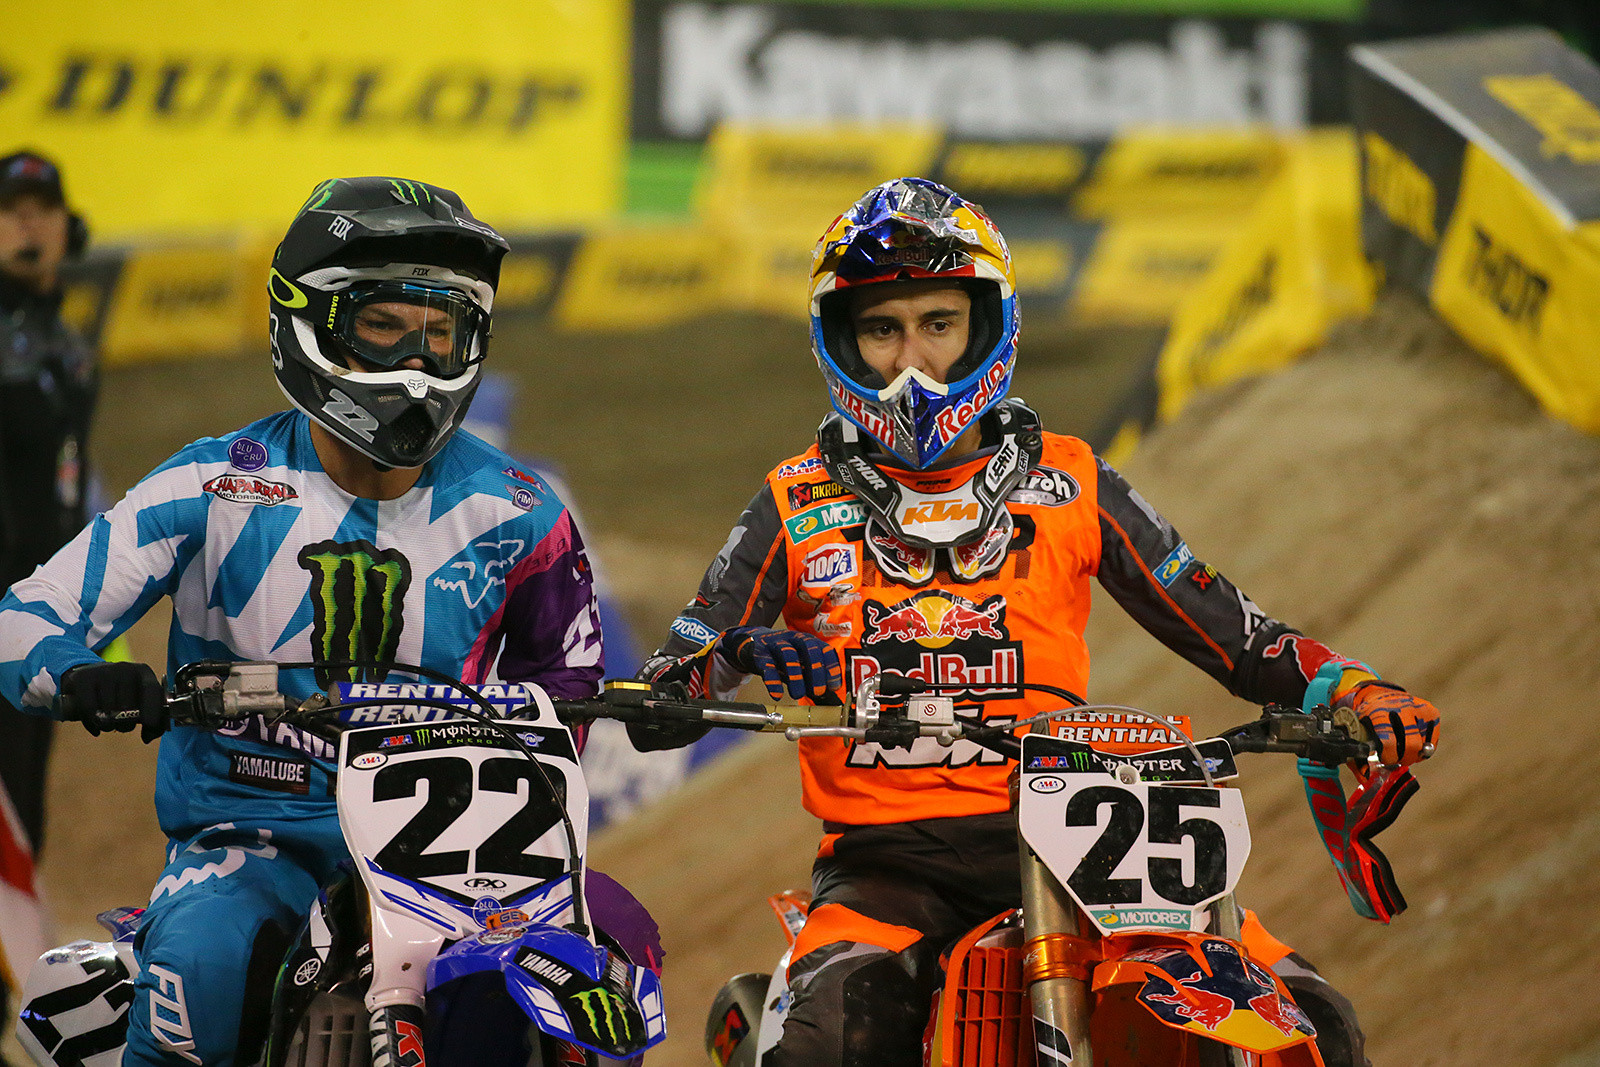 Chad Reed and Marvin Musquin - Vital MX Pit Bits: Toronto - Motocross Pictures - Vital MX